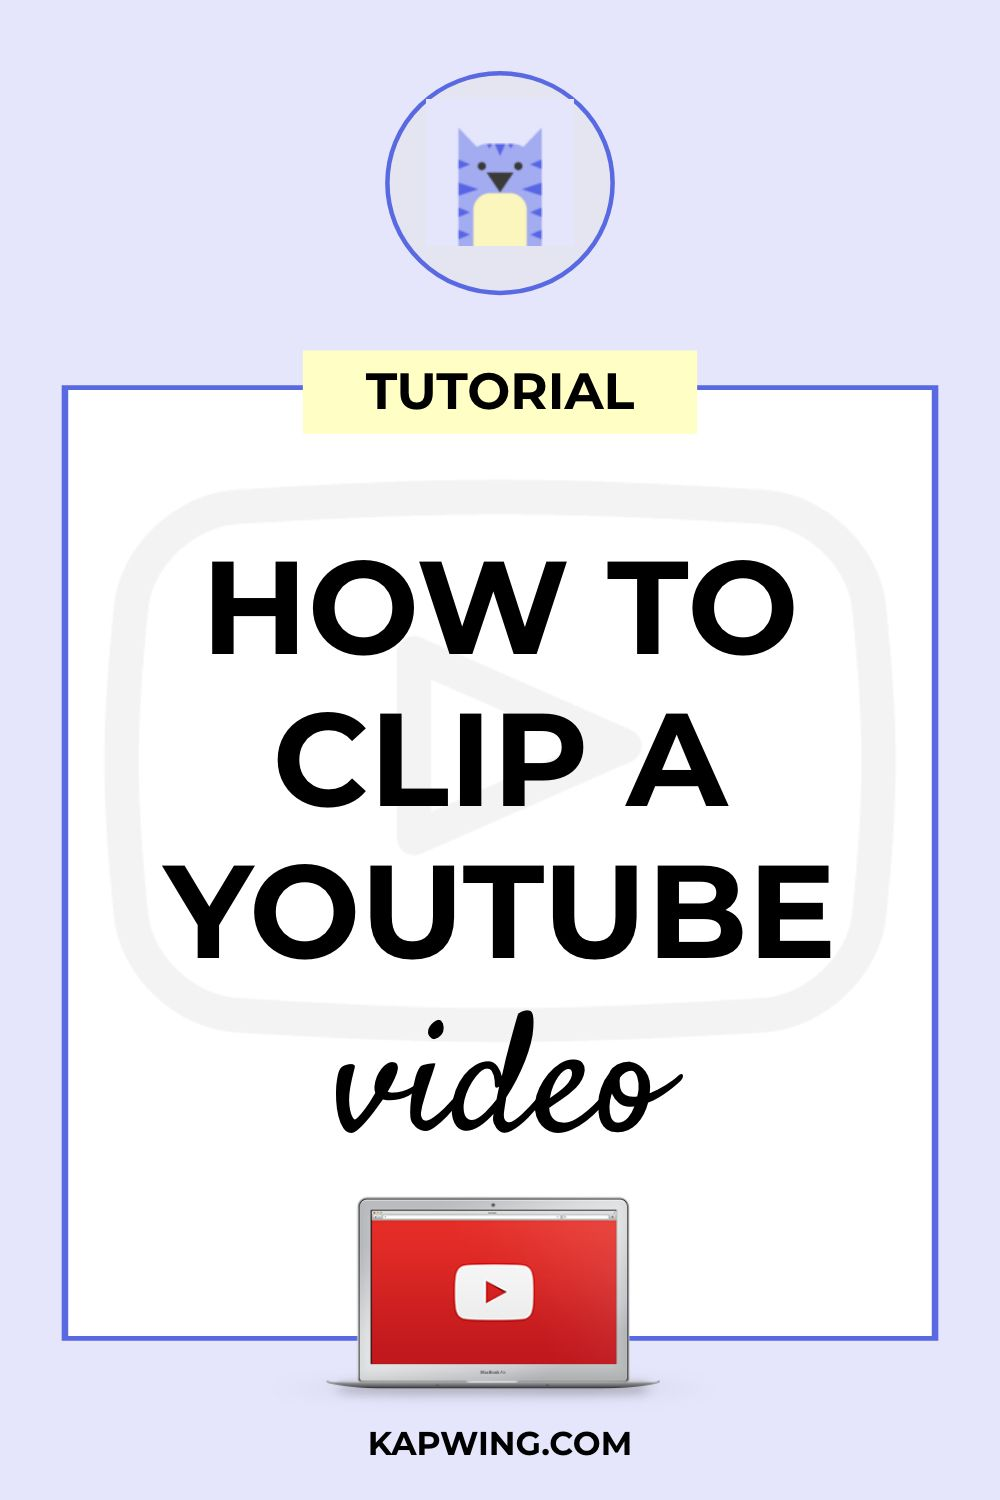 How To Clip A Youtube Video Youtube Videos How To Memorize Things Free Online Videos